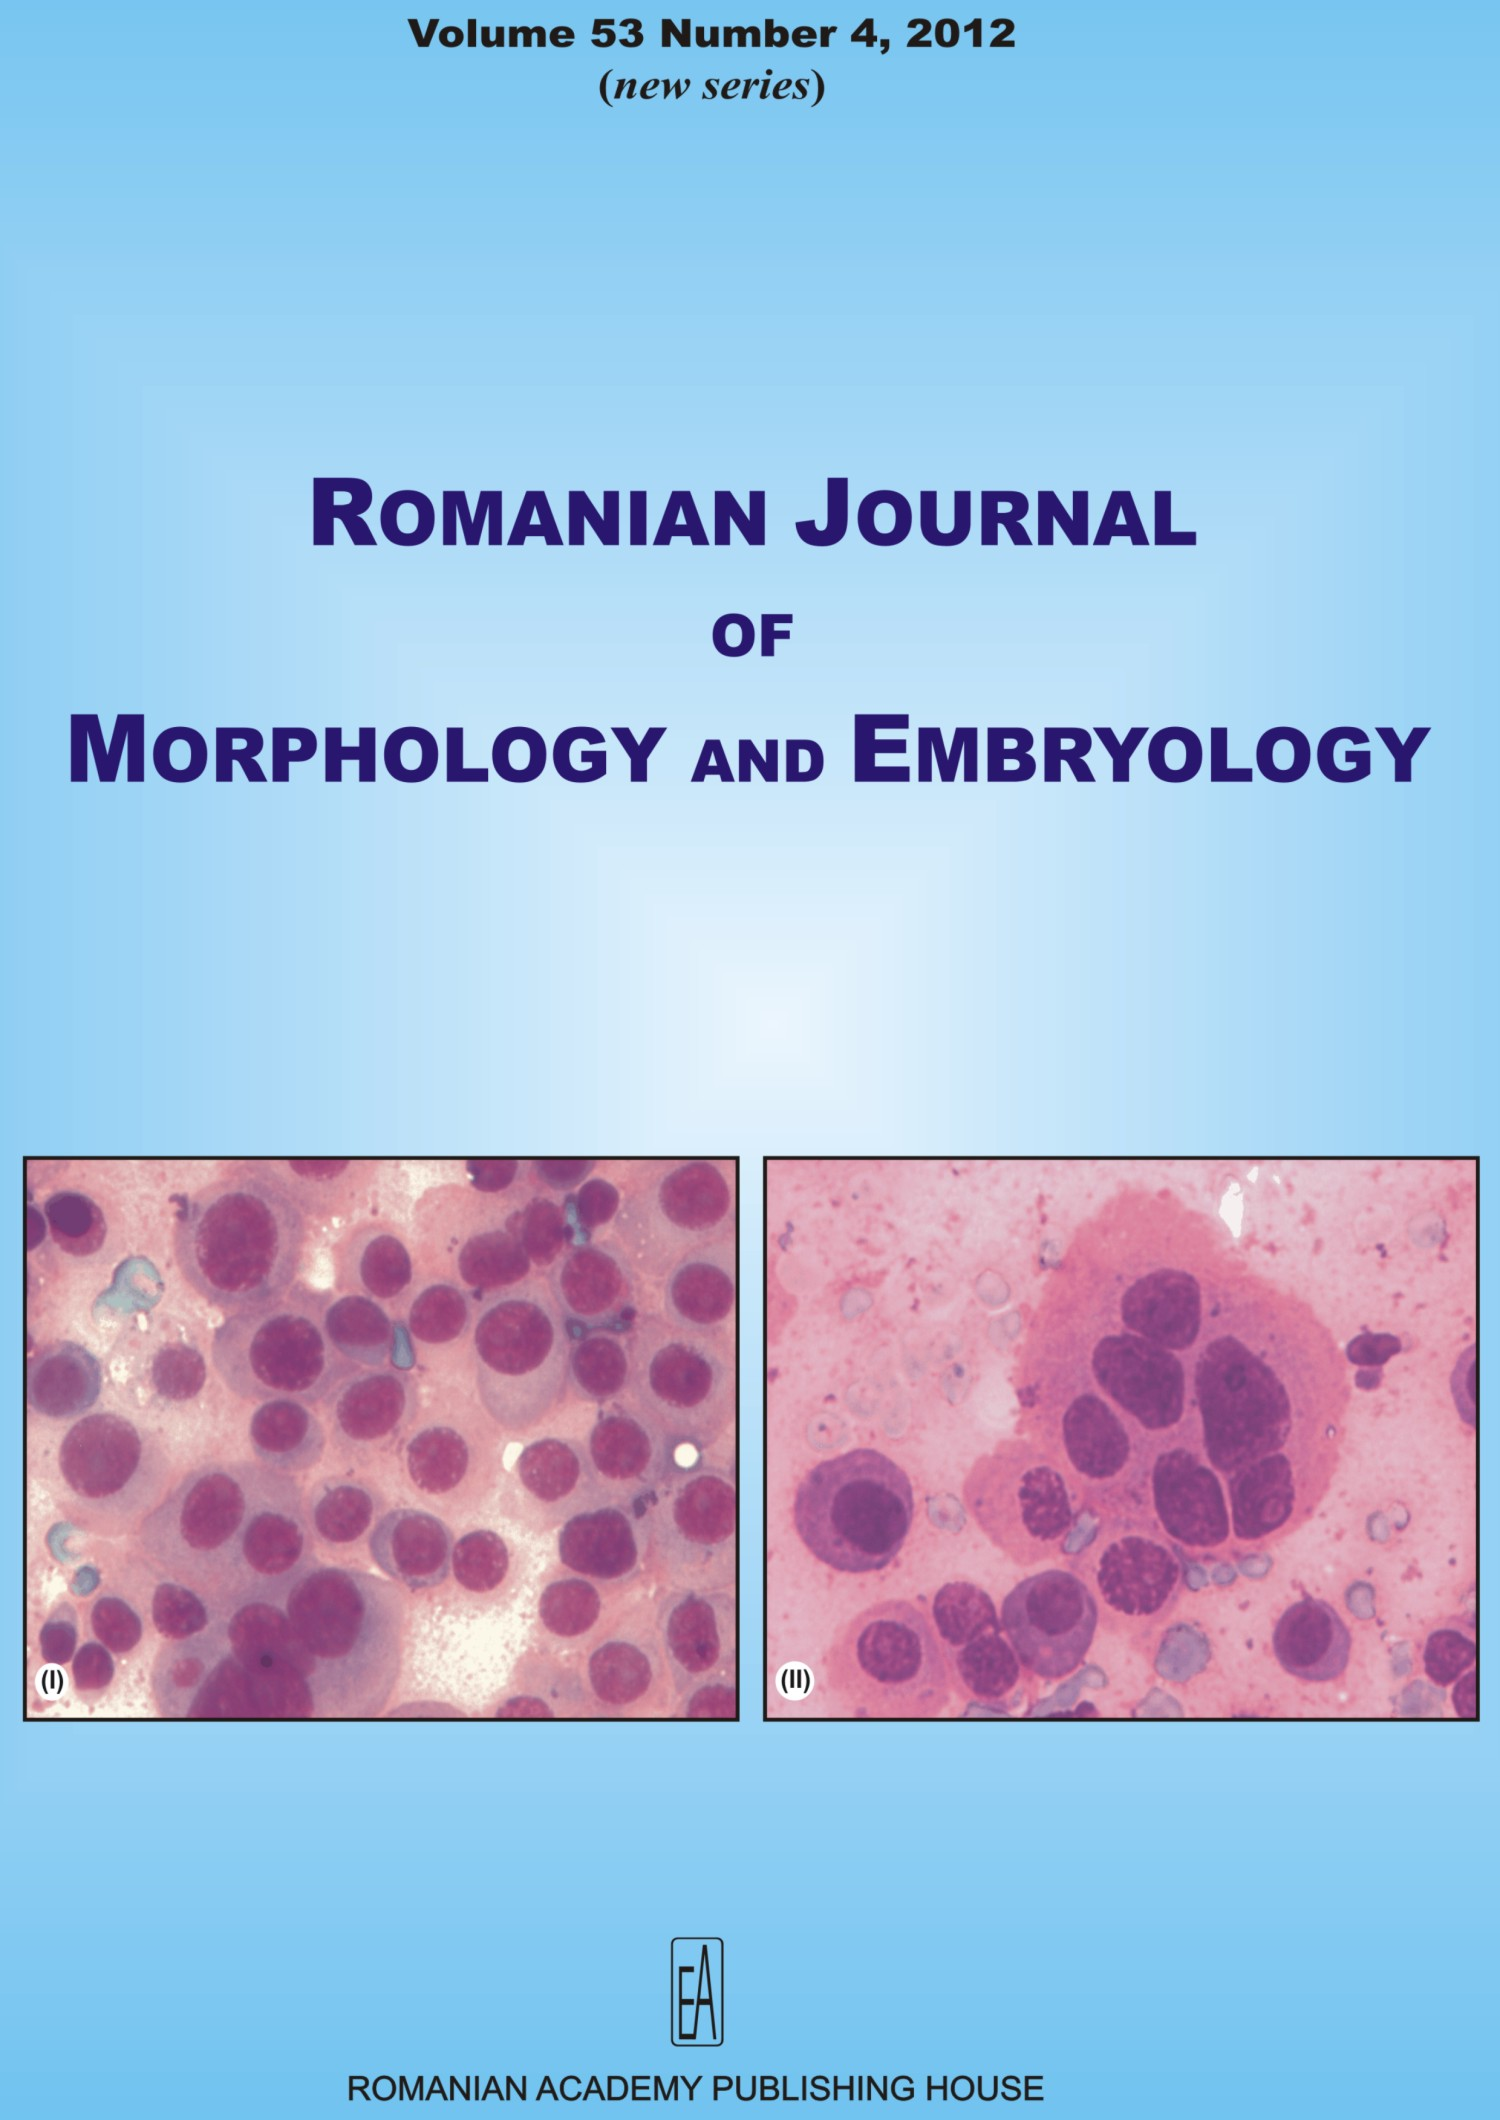 Romanian Journal of Morphology and Embryology, vol. 53 no. 4, 2012